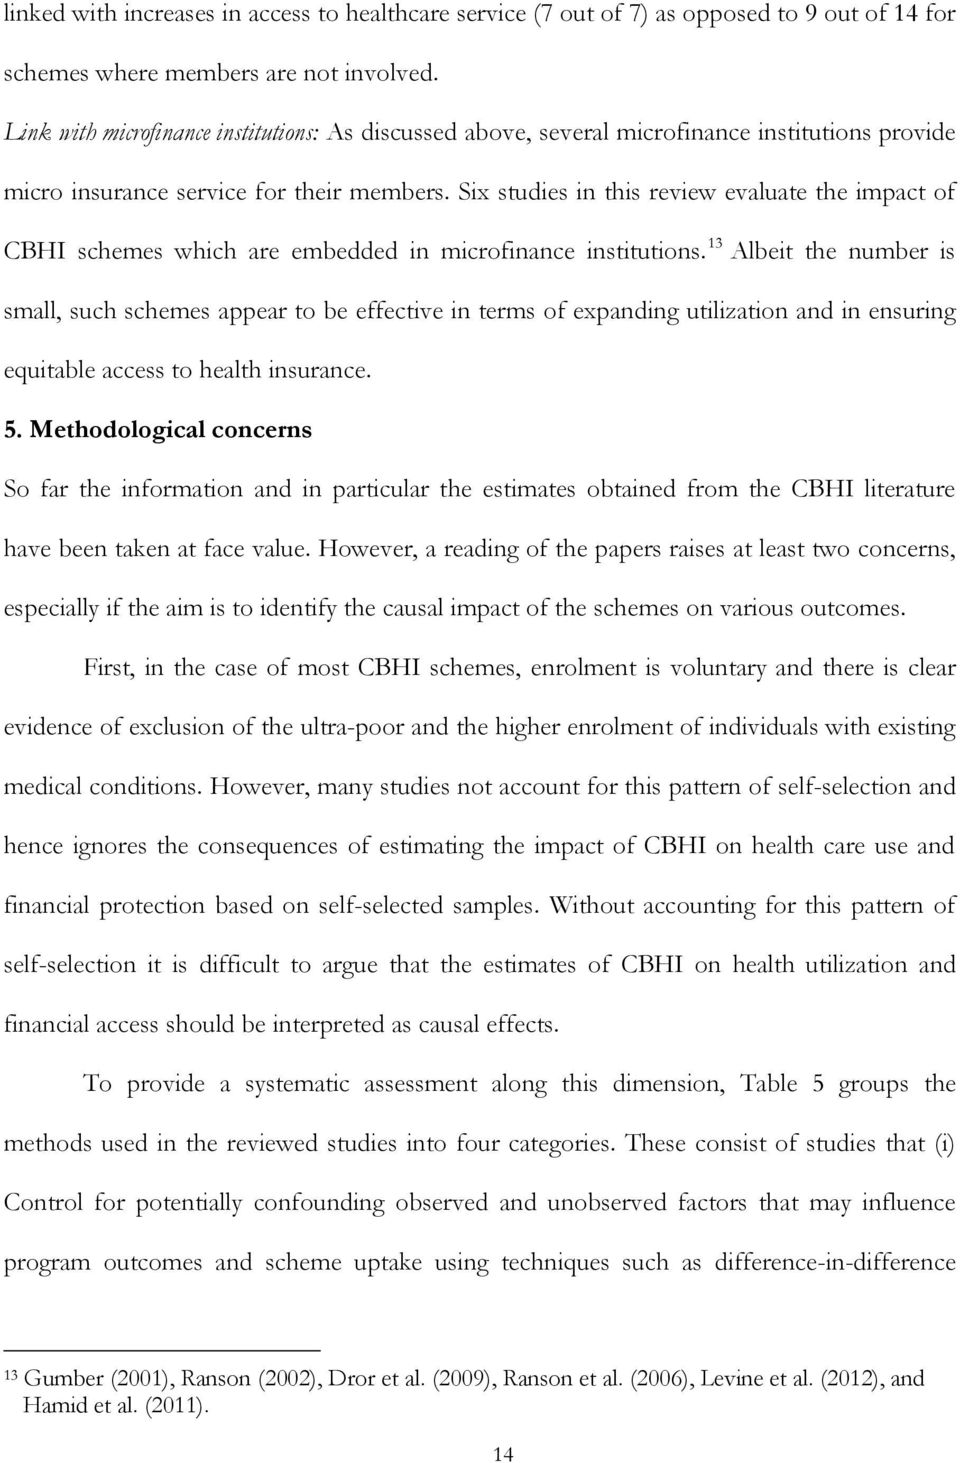 Six studies in this review evaluate the impact of CBHI schemes which are embedded in microfinance institutions.